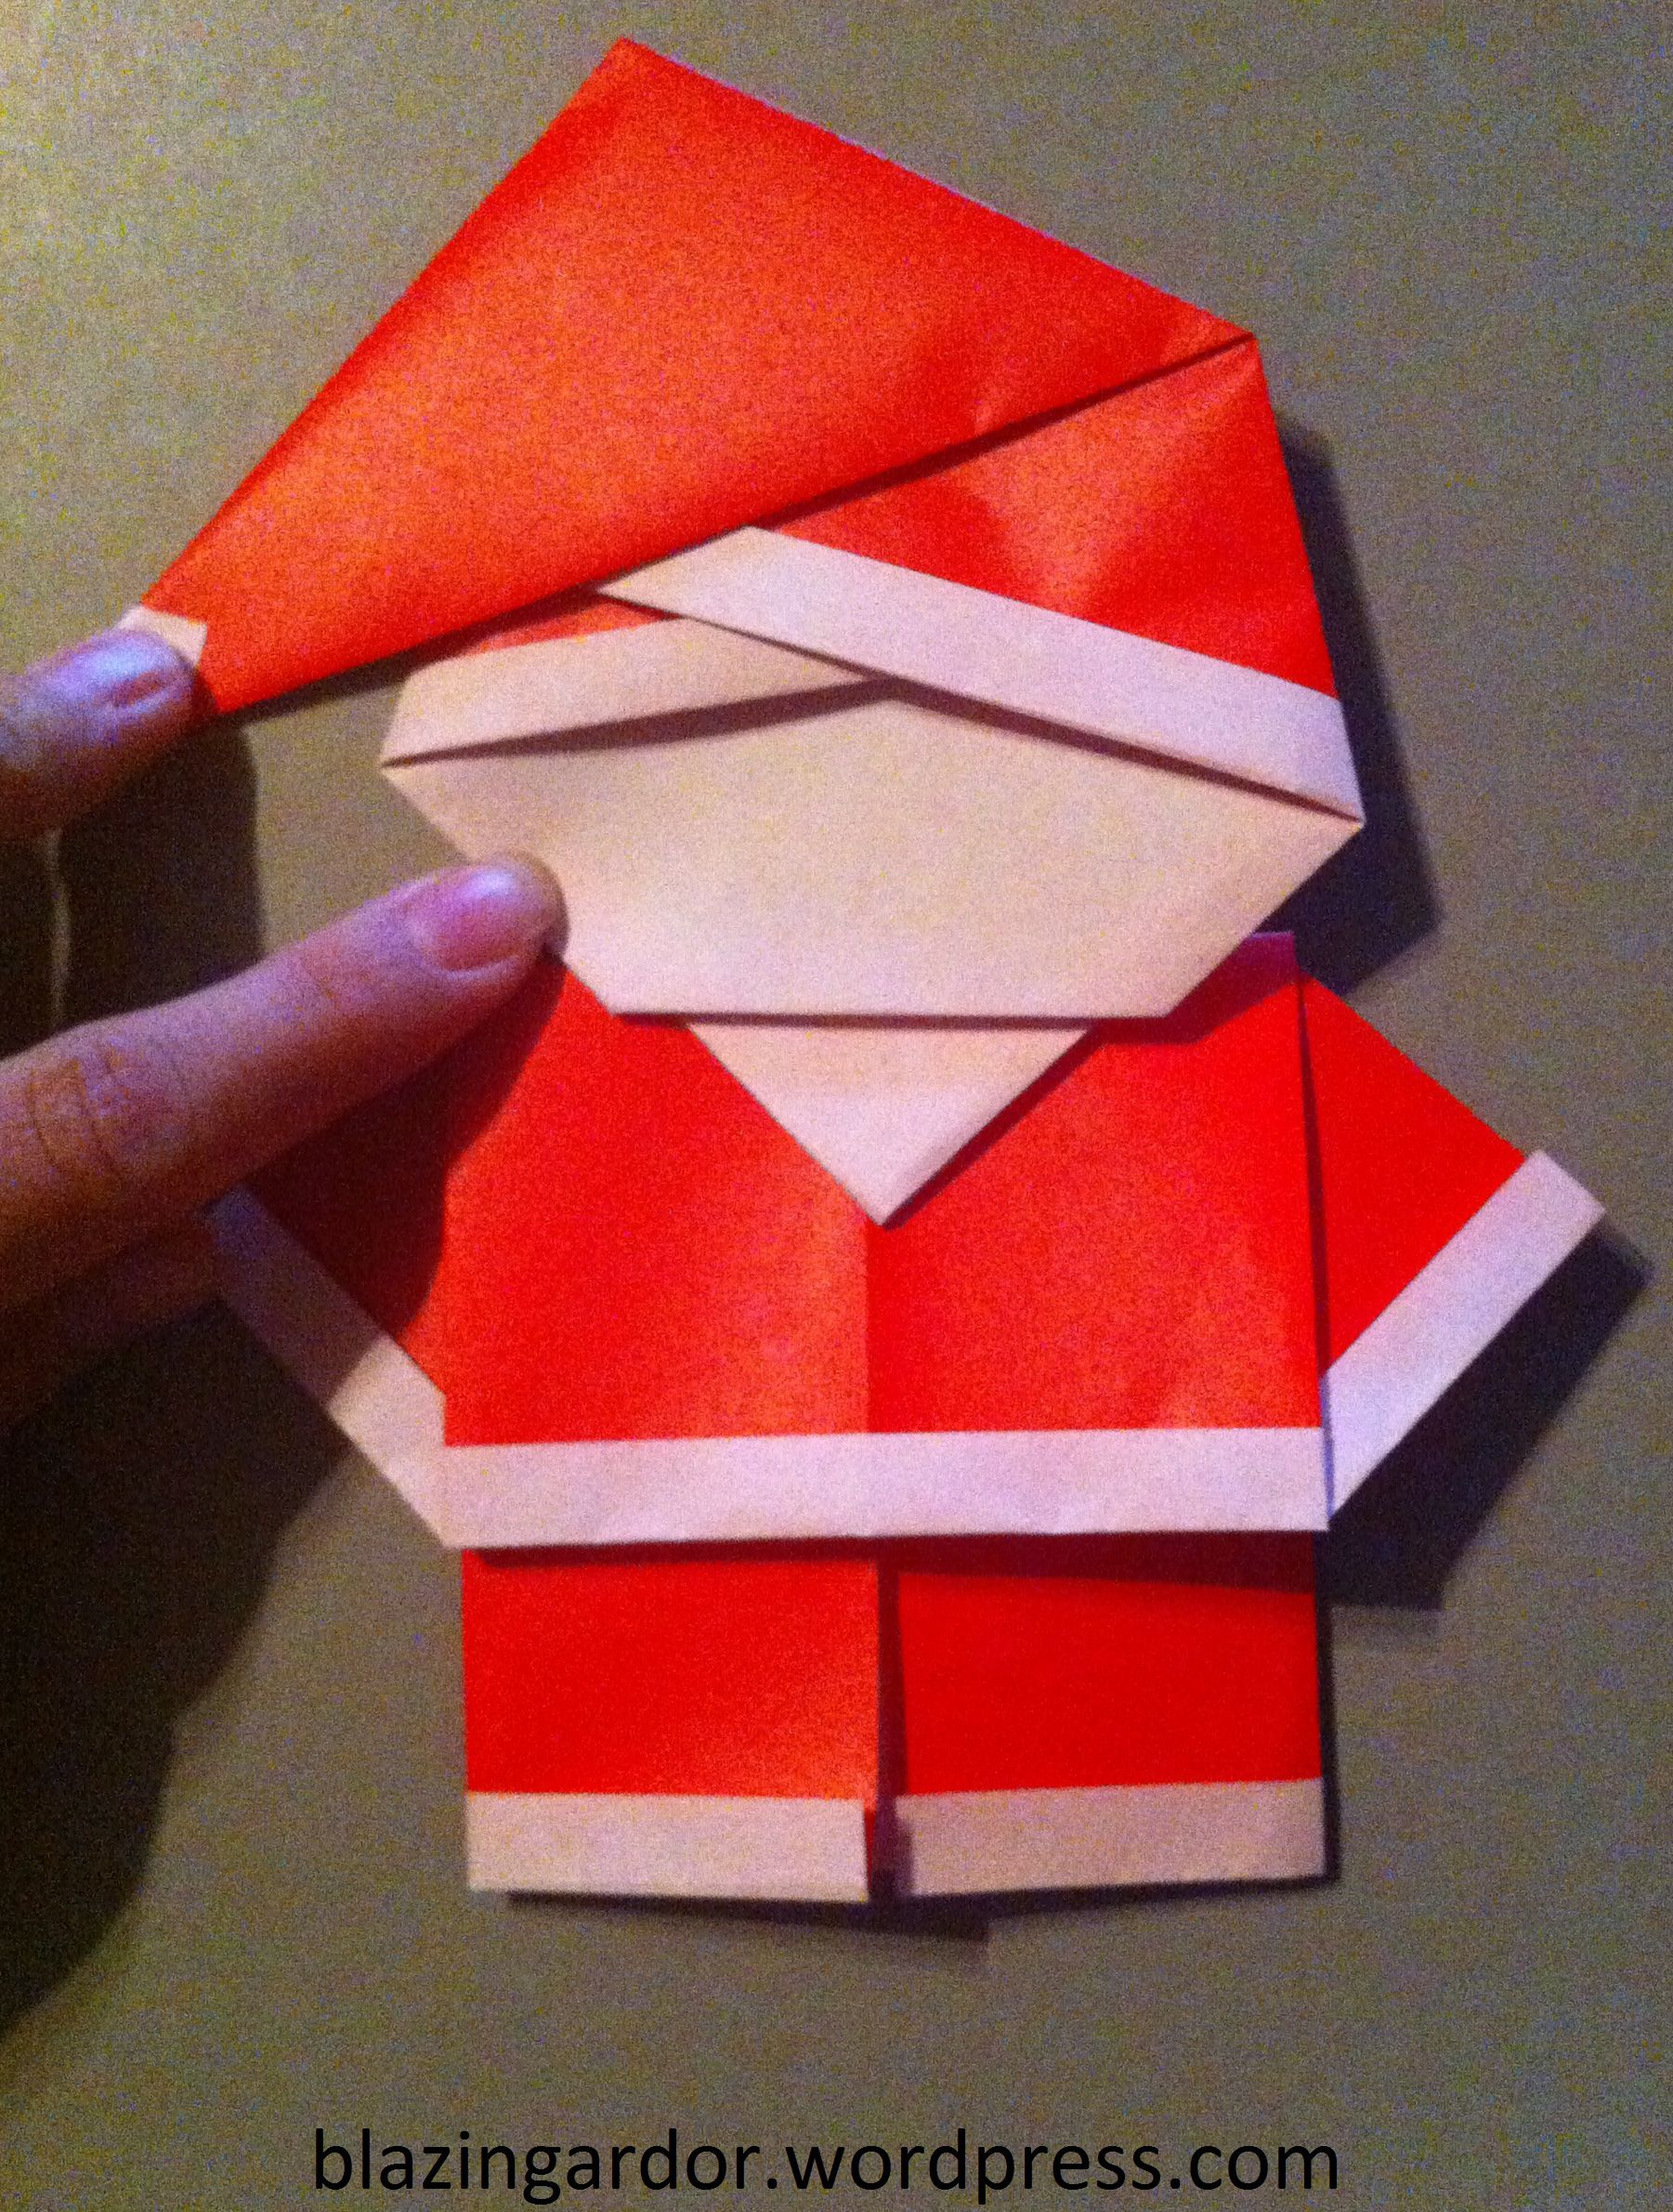 Origami Santa How To Guide Games And Activities Pinterest - Origami-papa-noel